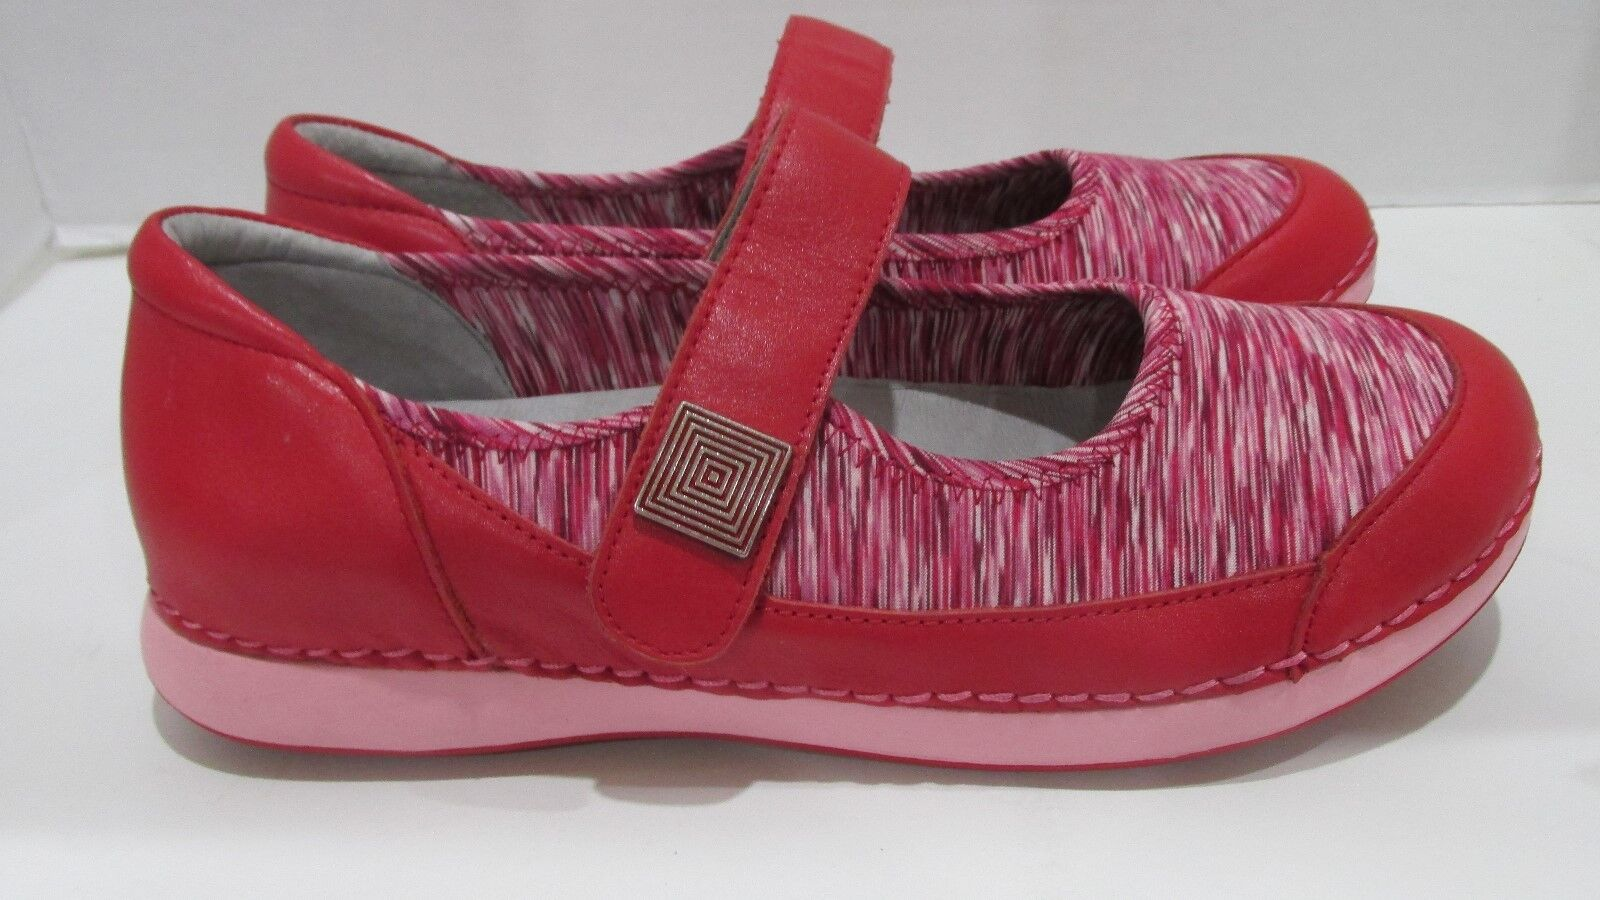 Alegria Leather and Neoprene Slip-On Mary Janes - Gem RED Size EU 39 US 9